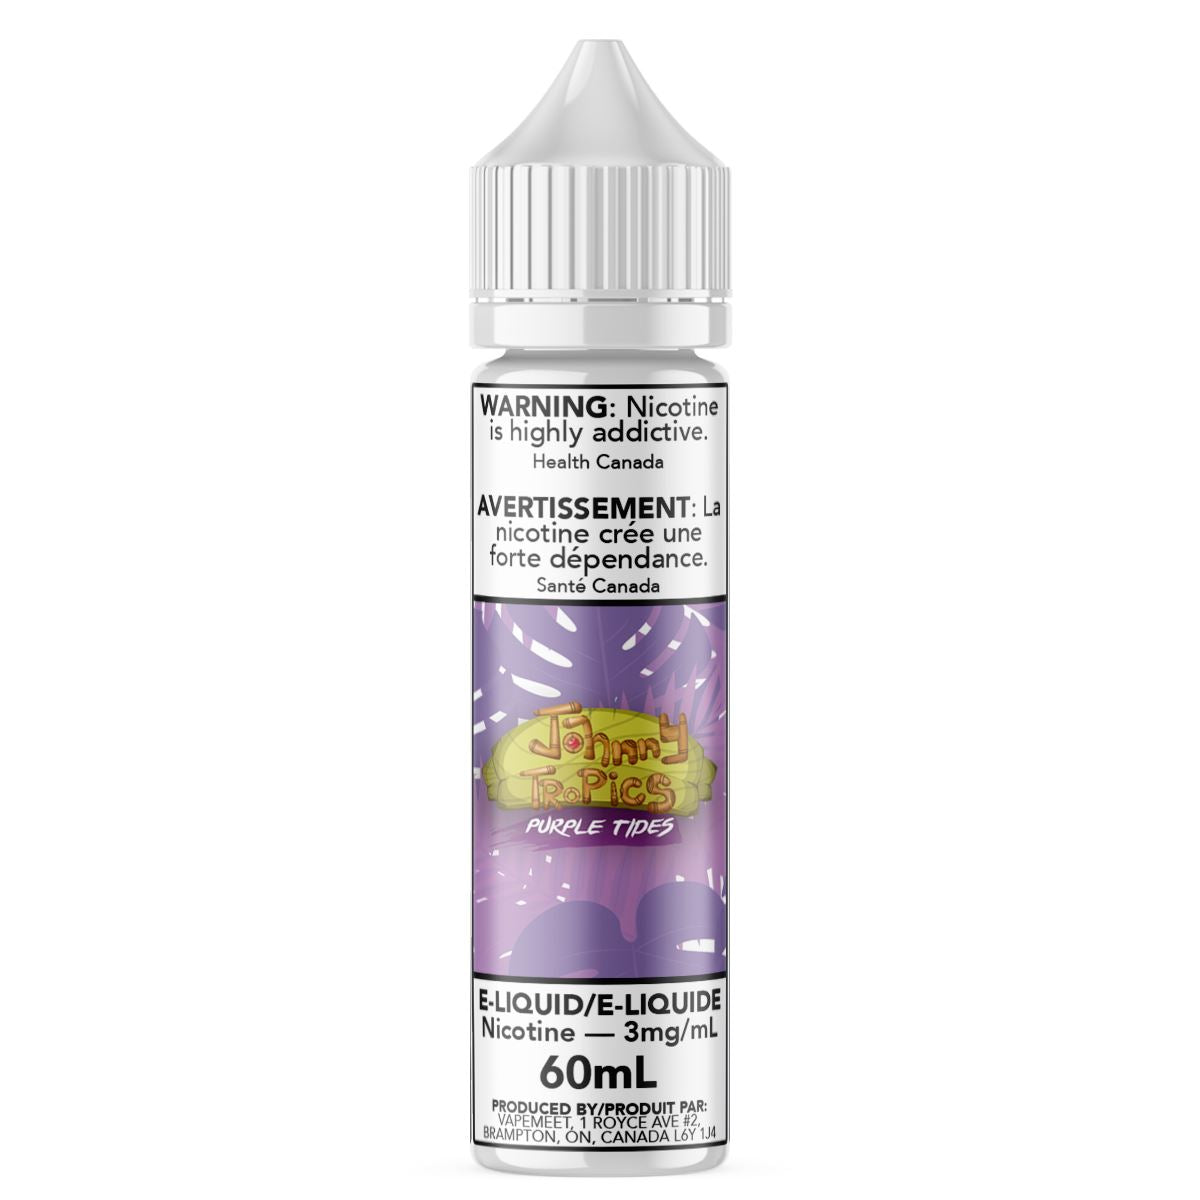 Johnny Tropics - Purple Tides E-Liquid Johnny Tropics 60mL 0 mg/mL